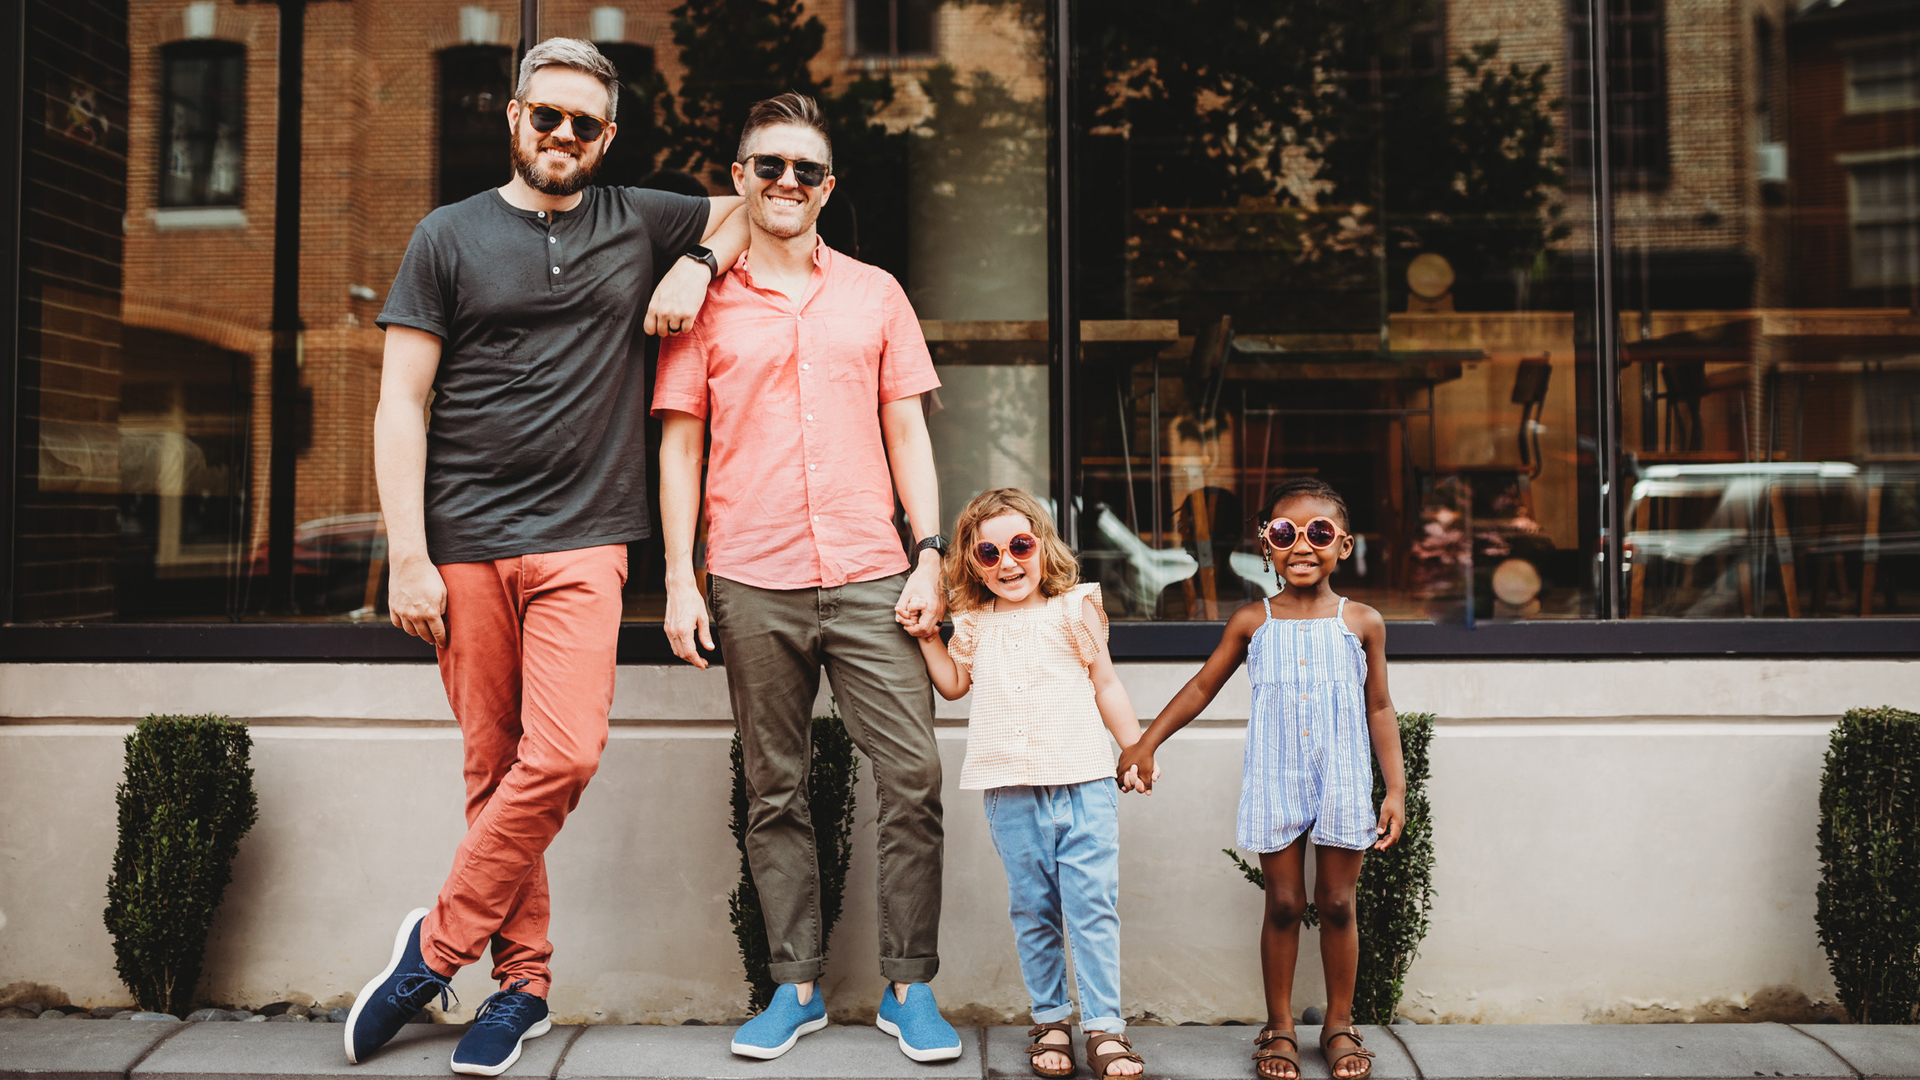 Jonathan and Thomas with their daughters outside with sunglasses on